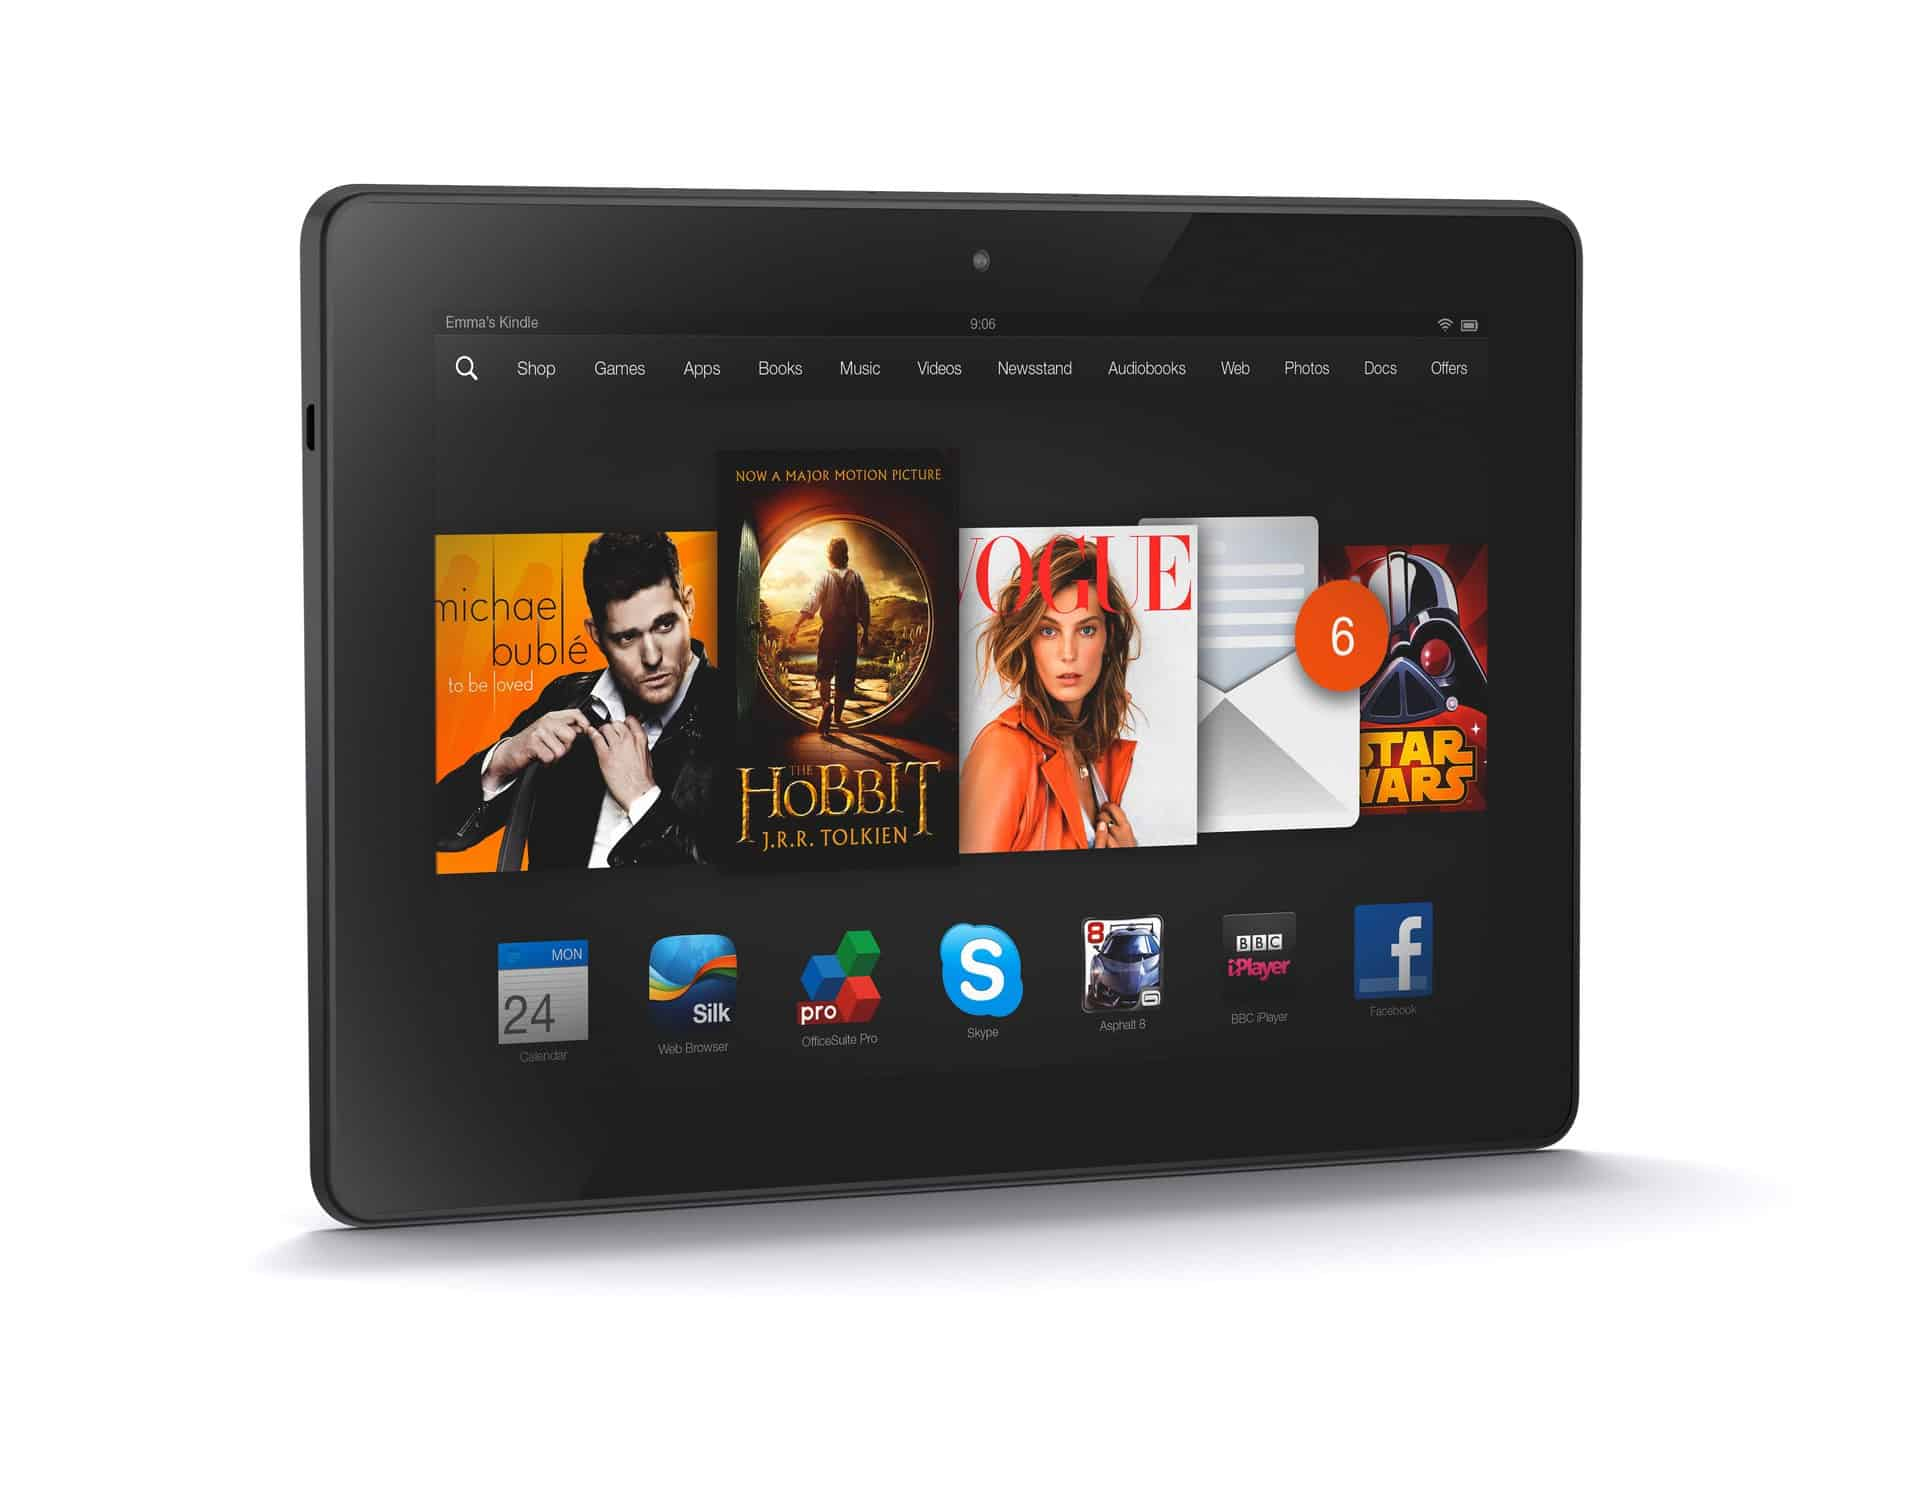 How To Root The Amazon Kindle Fire Hdx 8 9 Quot